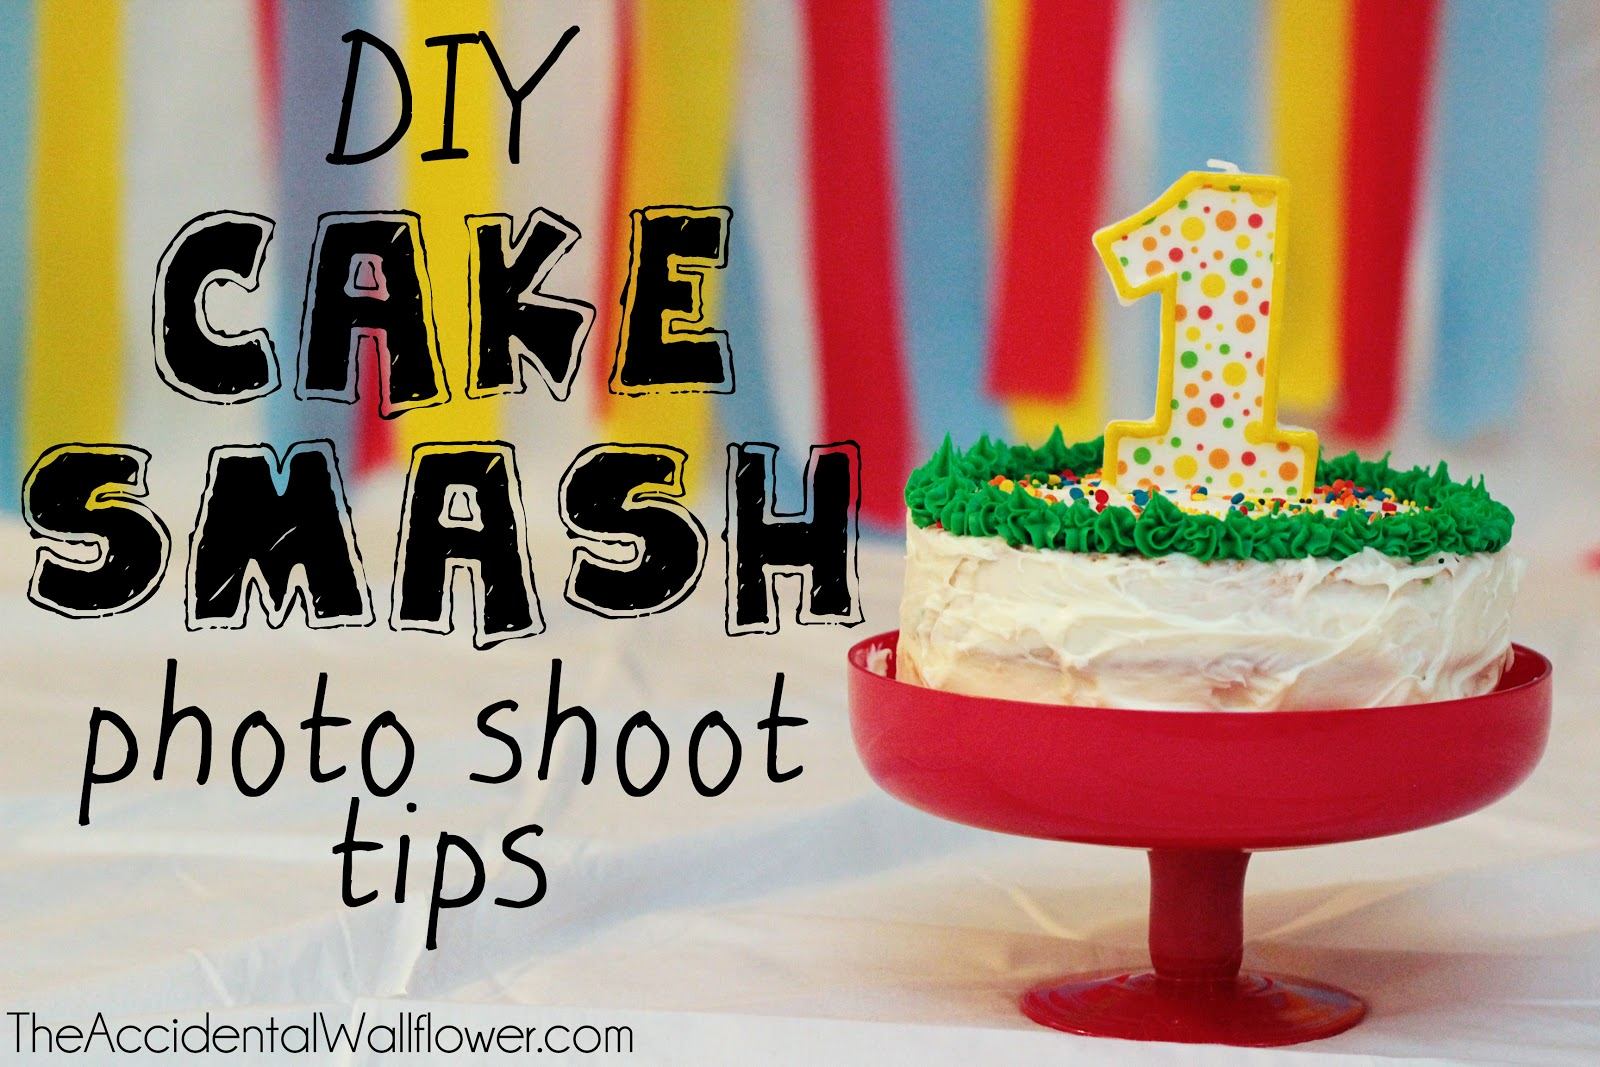 DIY Cake Smash Tips The Accidental Wallflower